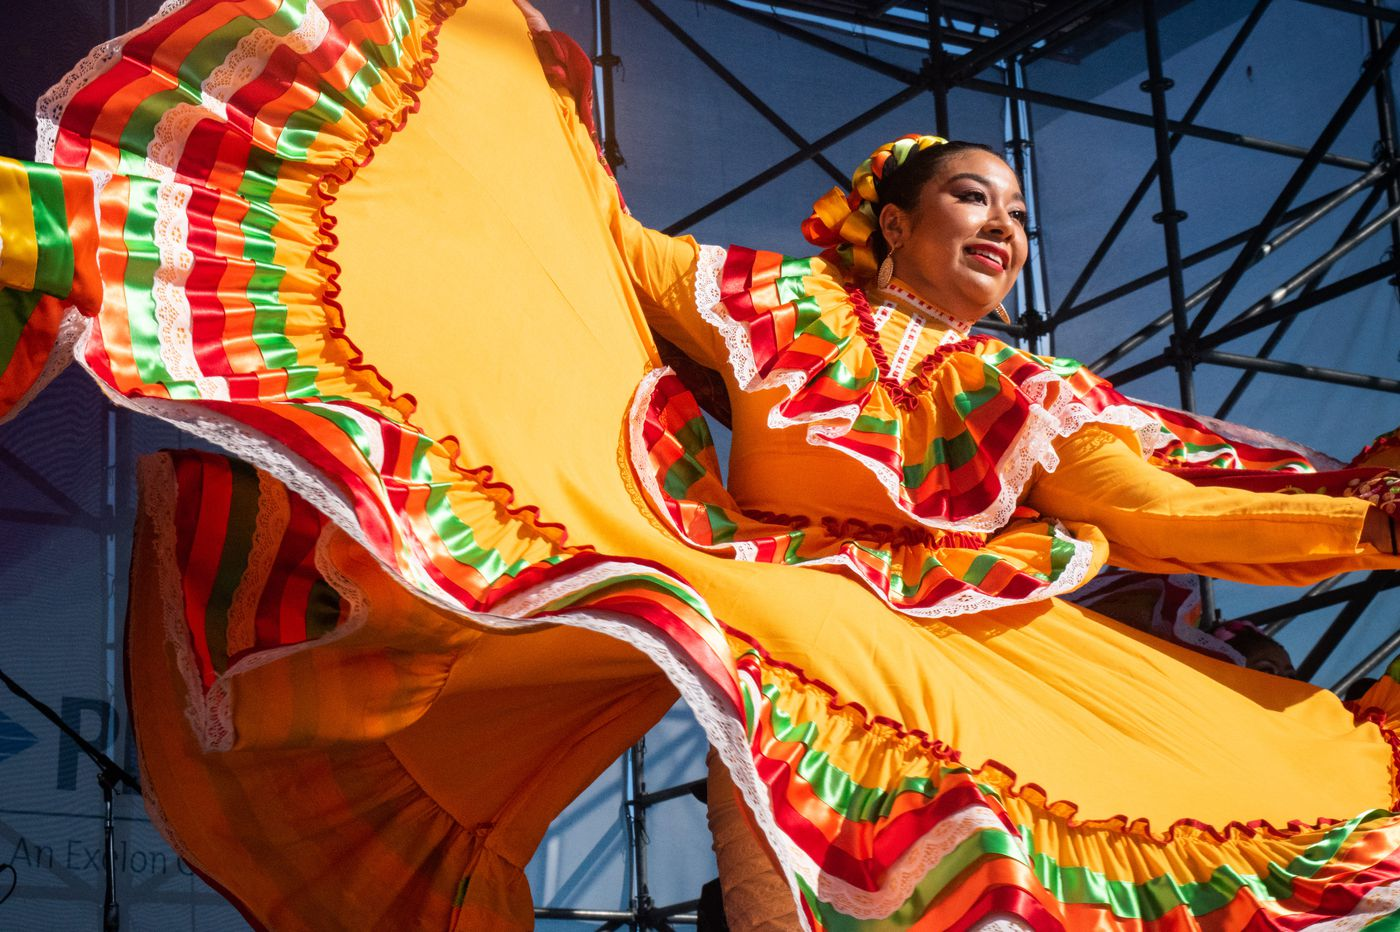 A personal tradition at the Mexican Independence Day Festival